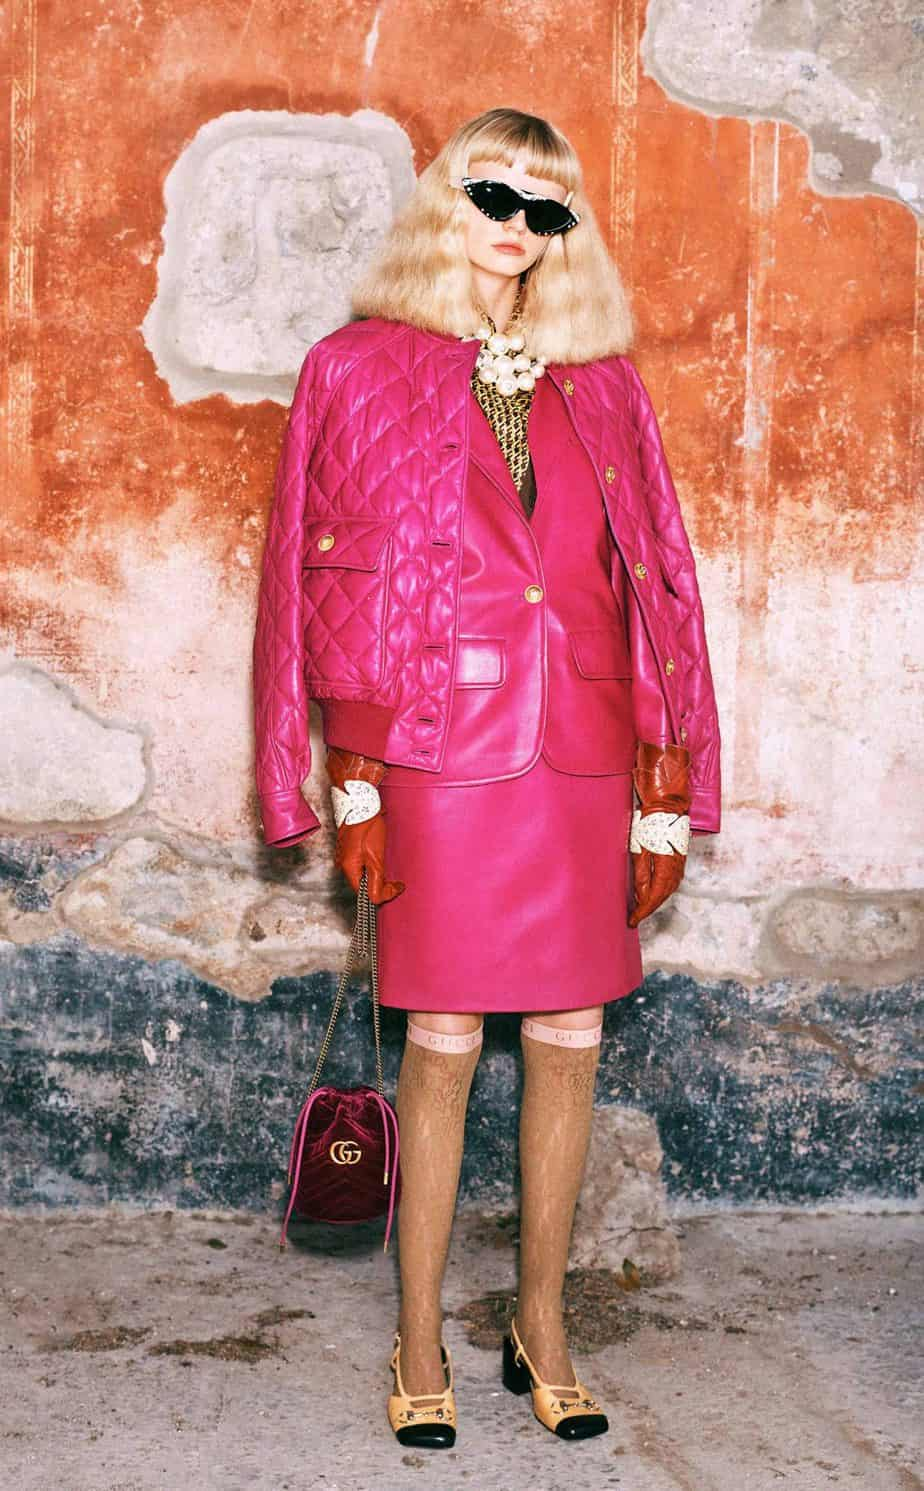 GUCCI, FALL 2019. WOMEN'S FASHION, Photographer Harmony Korine, Art Director, Christopher Simmonds - 30